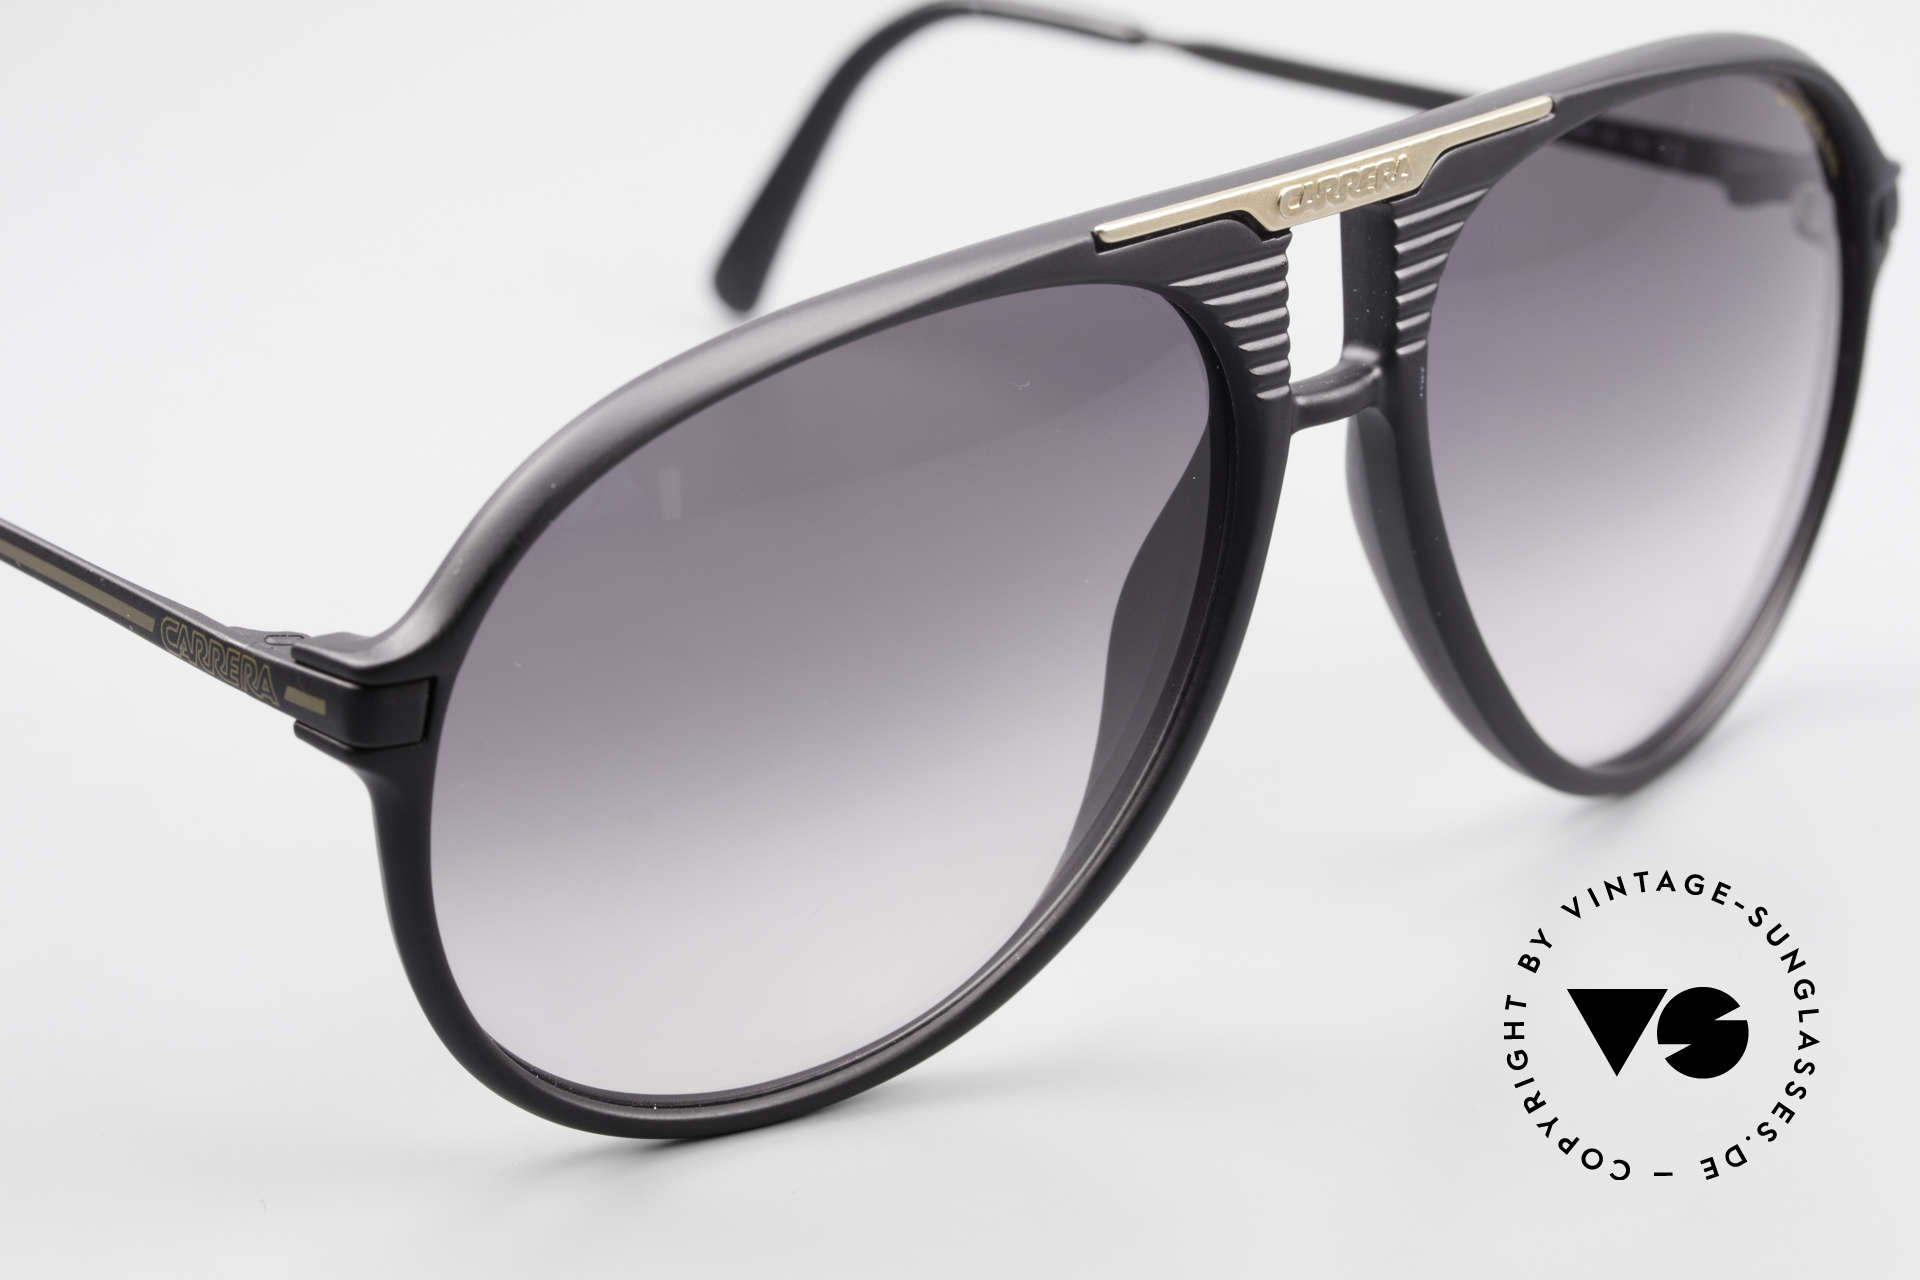 Carrera 5595 80's Shades Extra Sun Lenses, unworn single item (like all our vintage shades), Made for Men